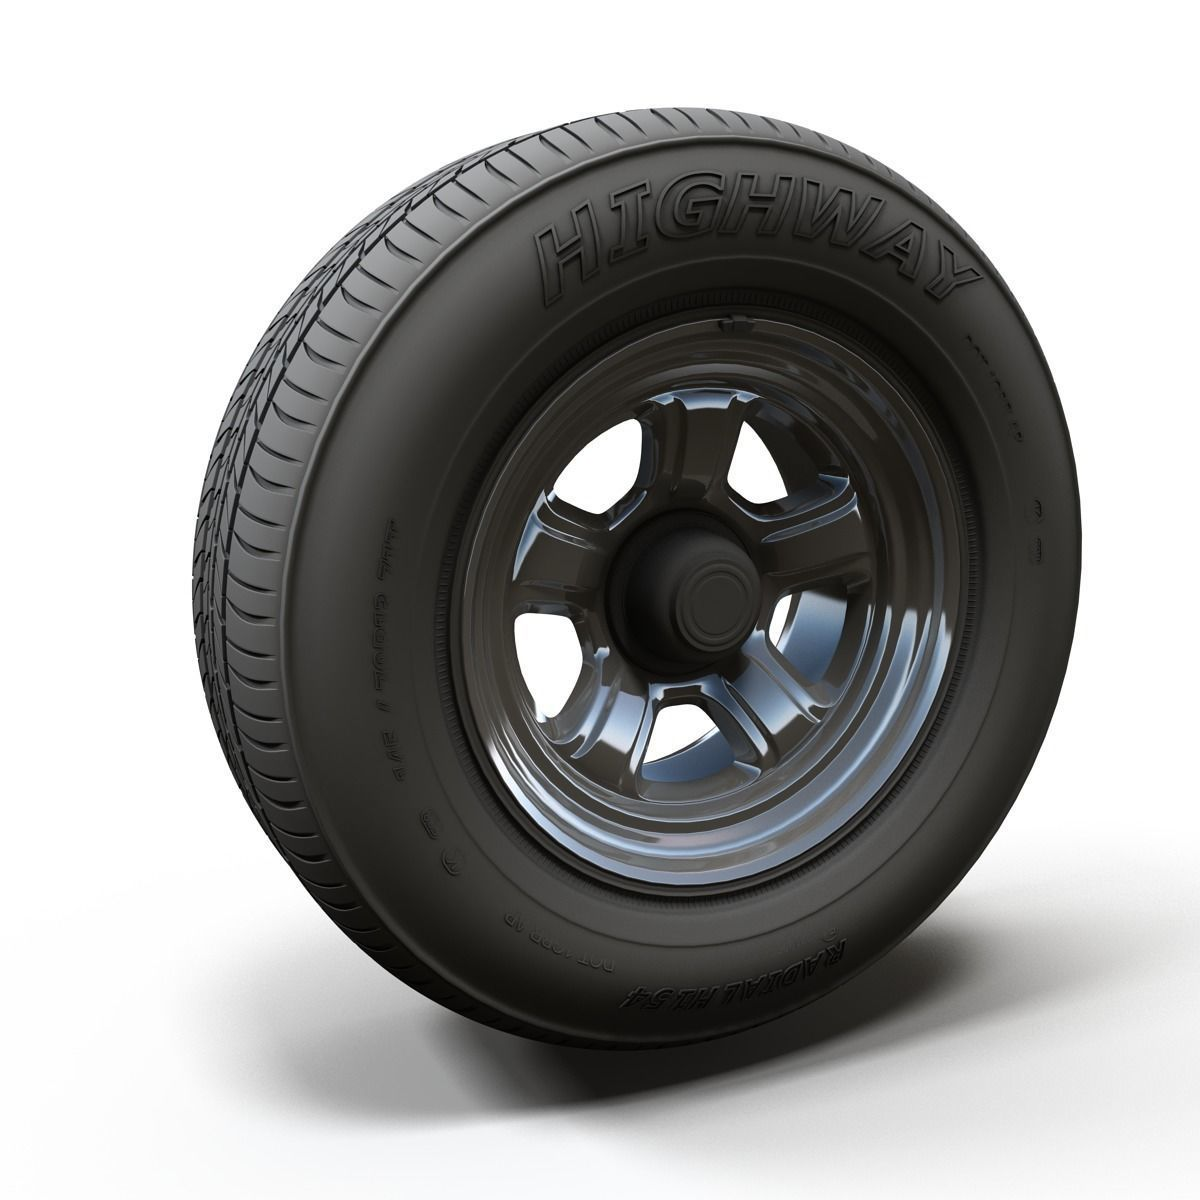 Dodge highpoly wheel